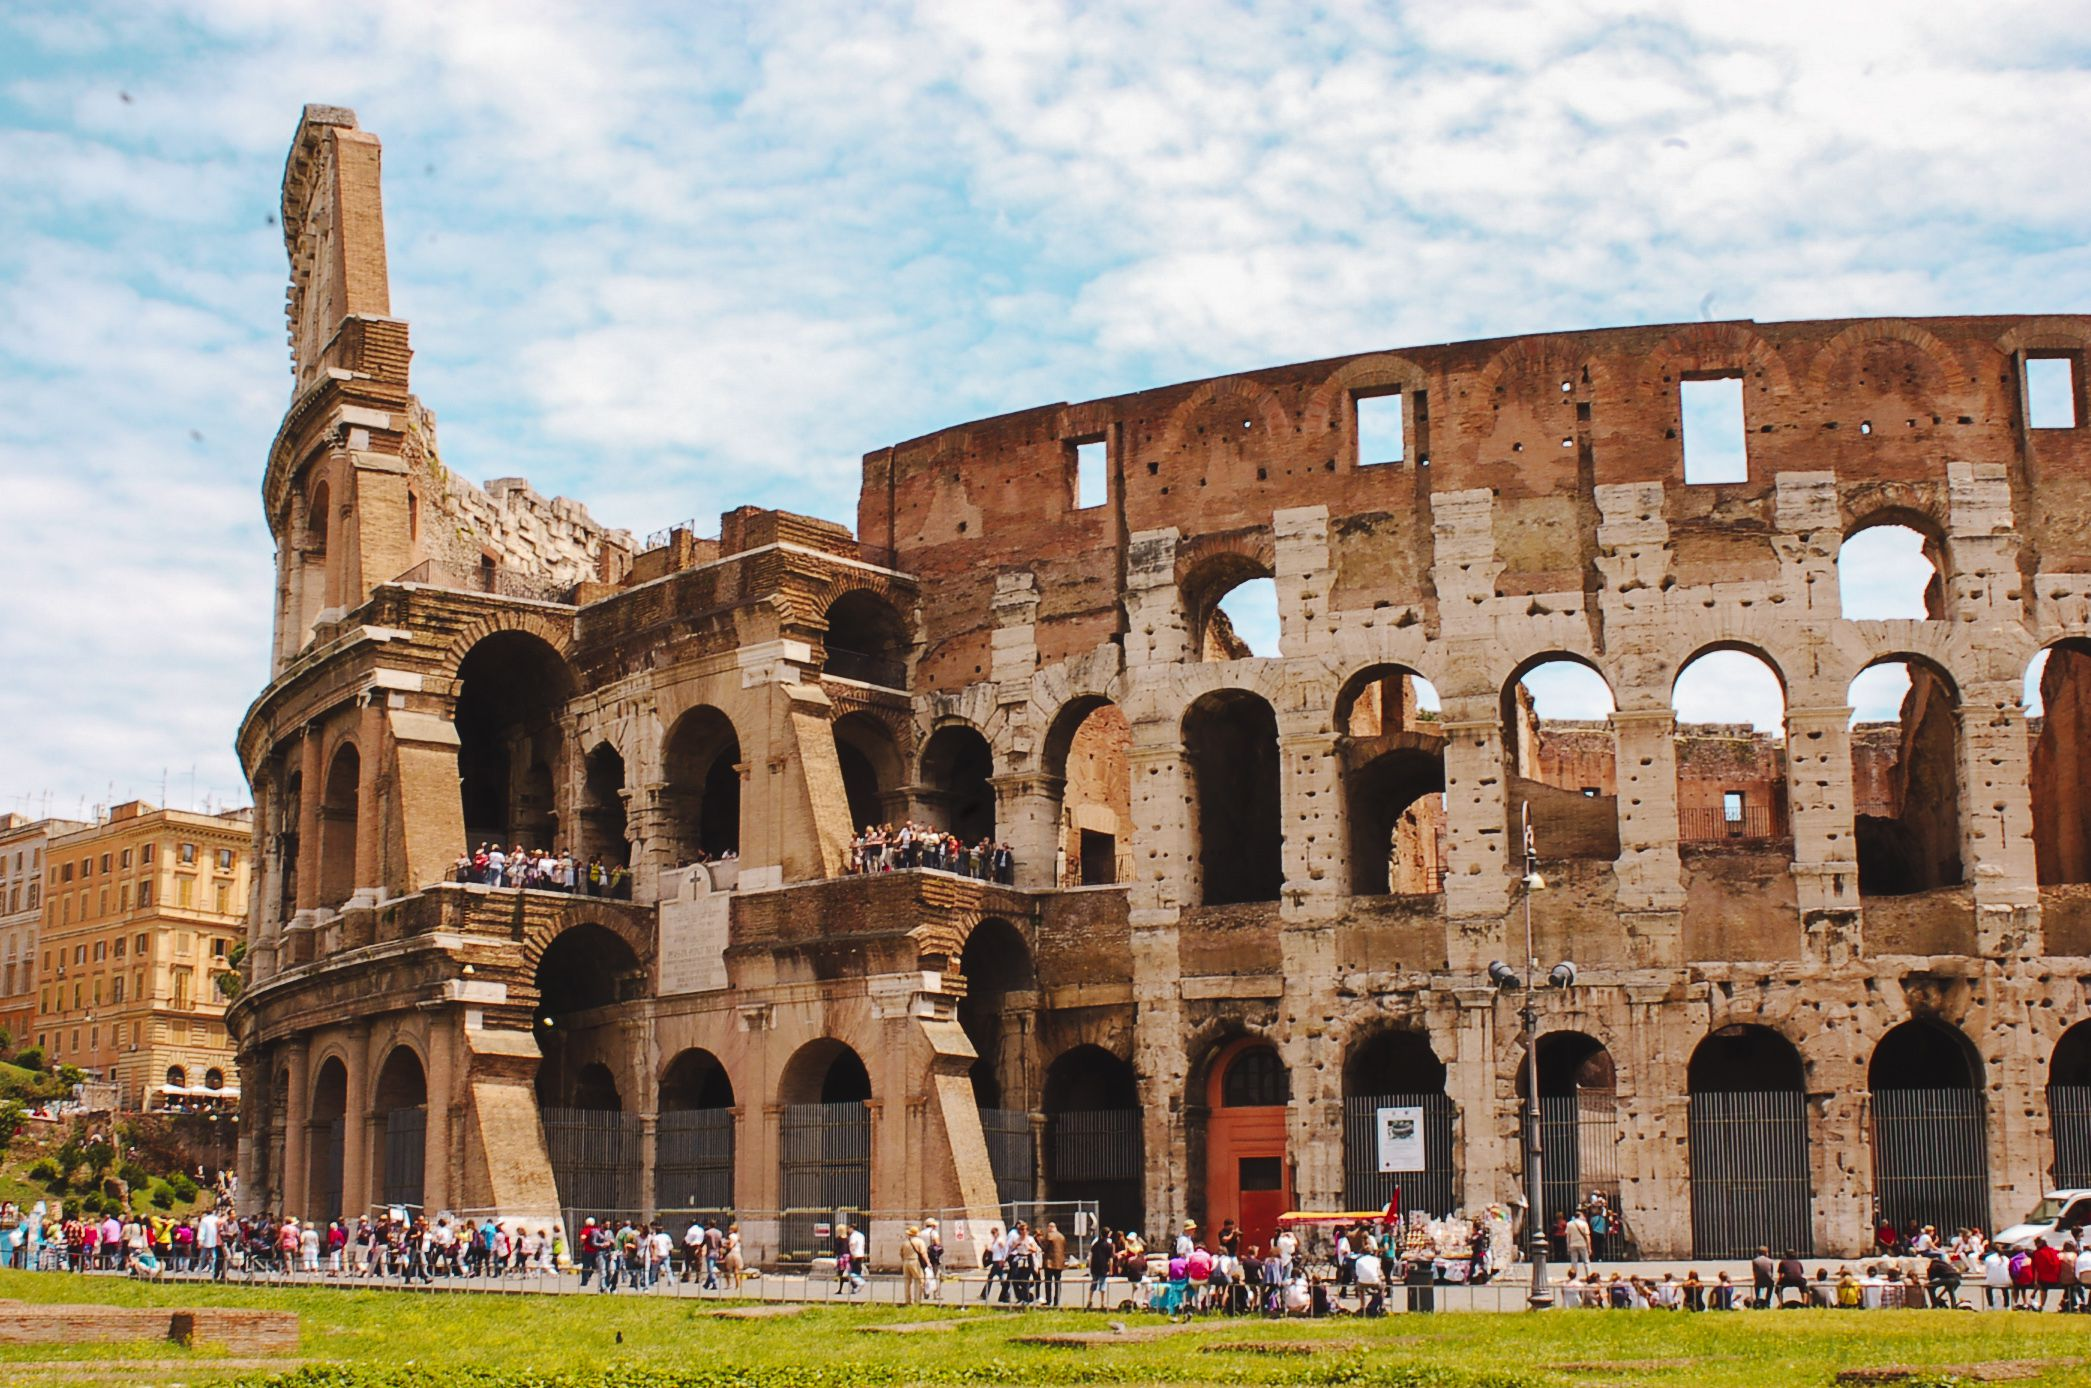 How To Visit The Roman Colosseum In Rome, Italy